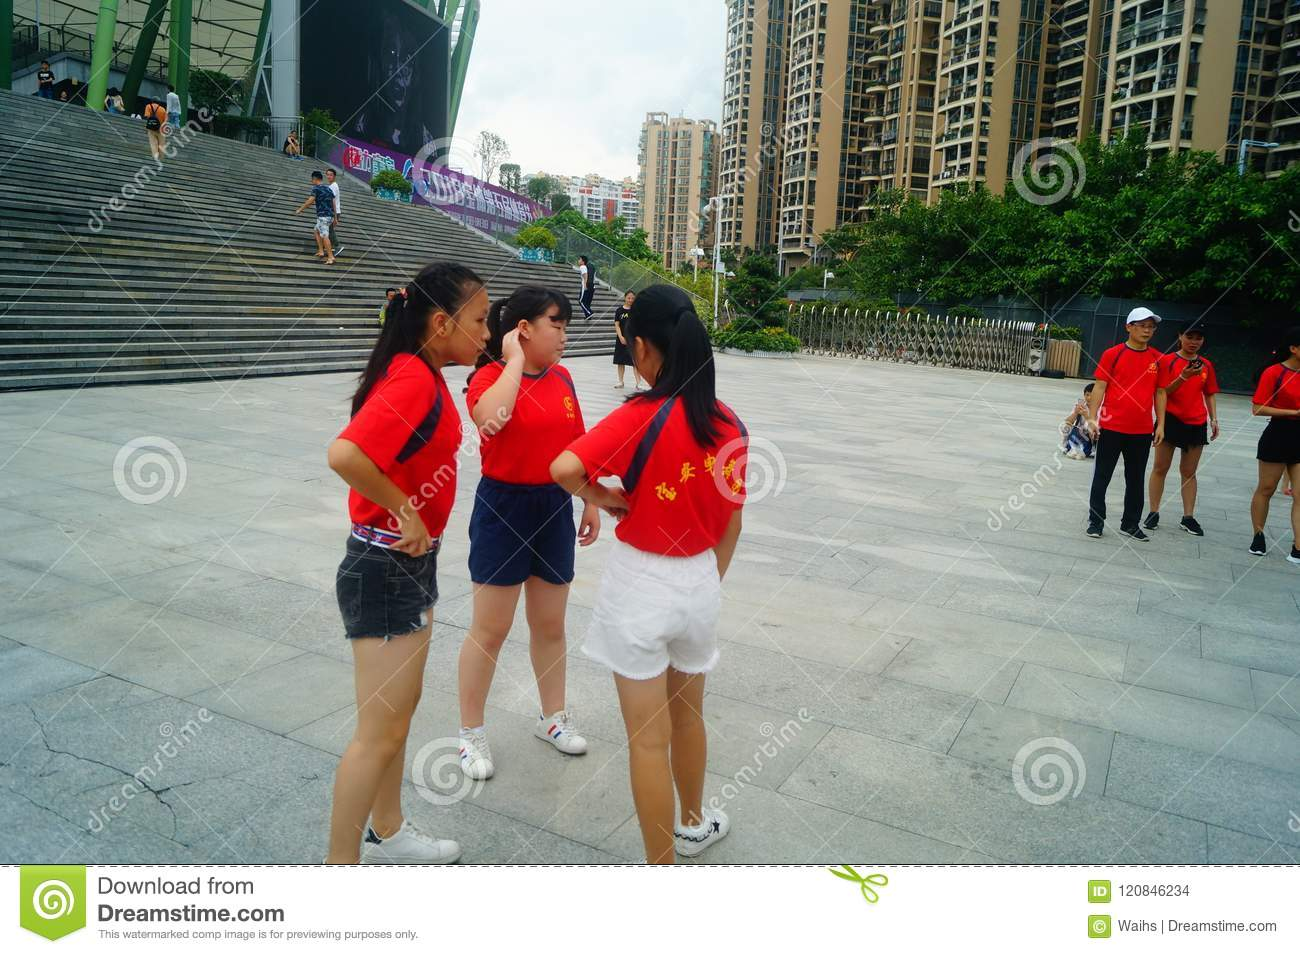 Shenzhen, China: Weekend Entertainment, Women Dance And